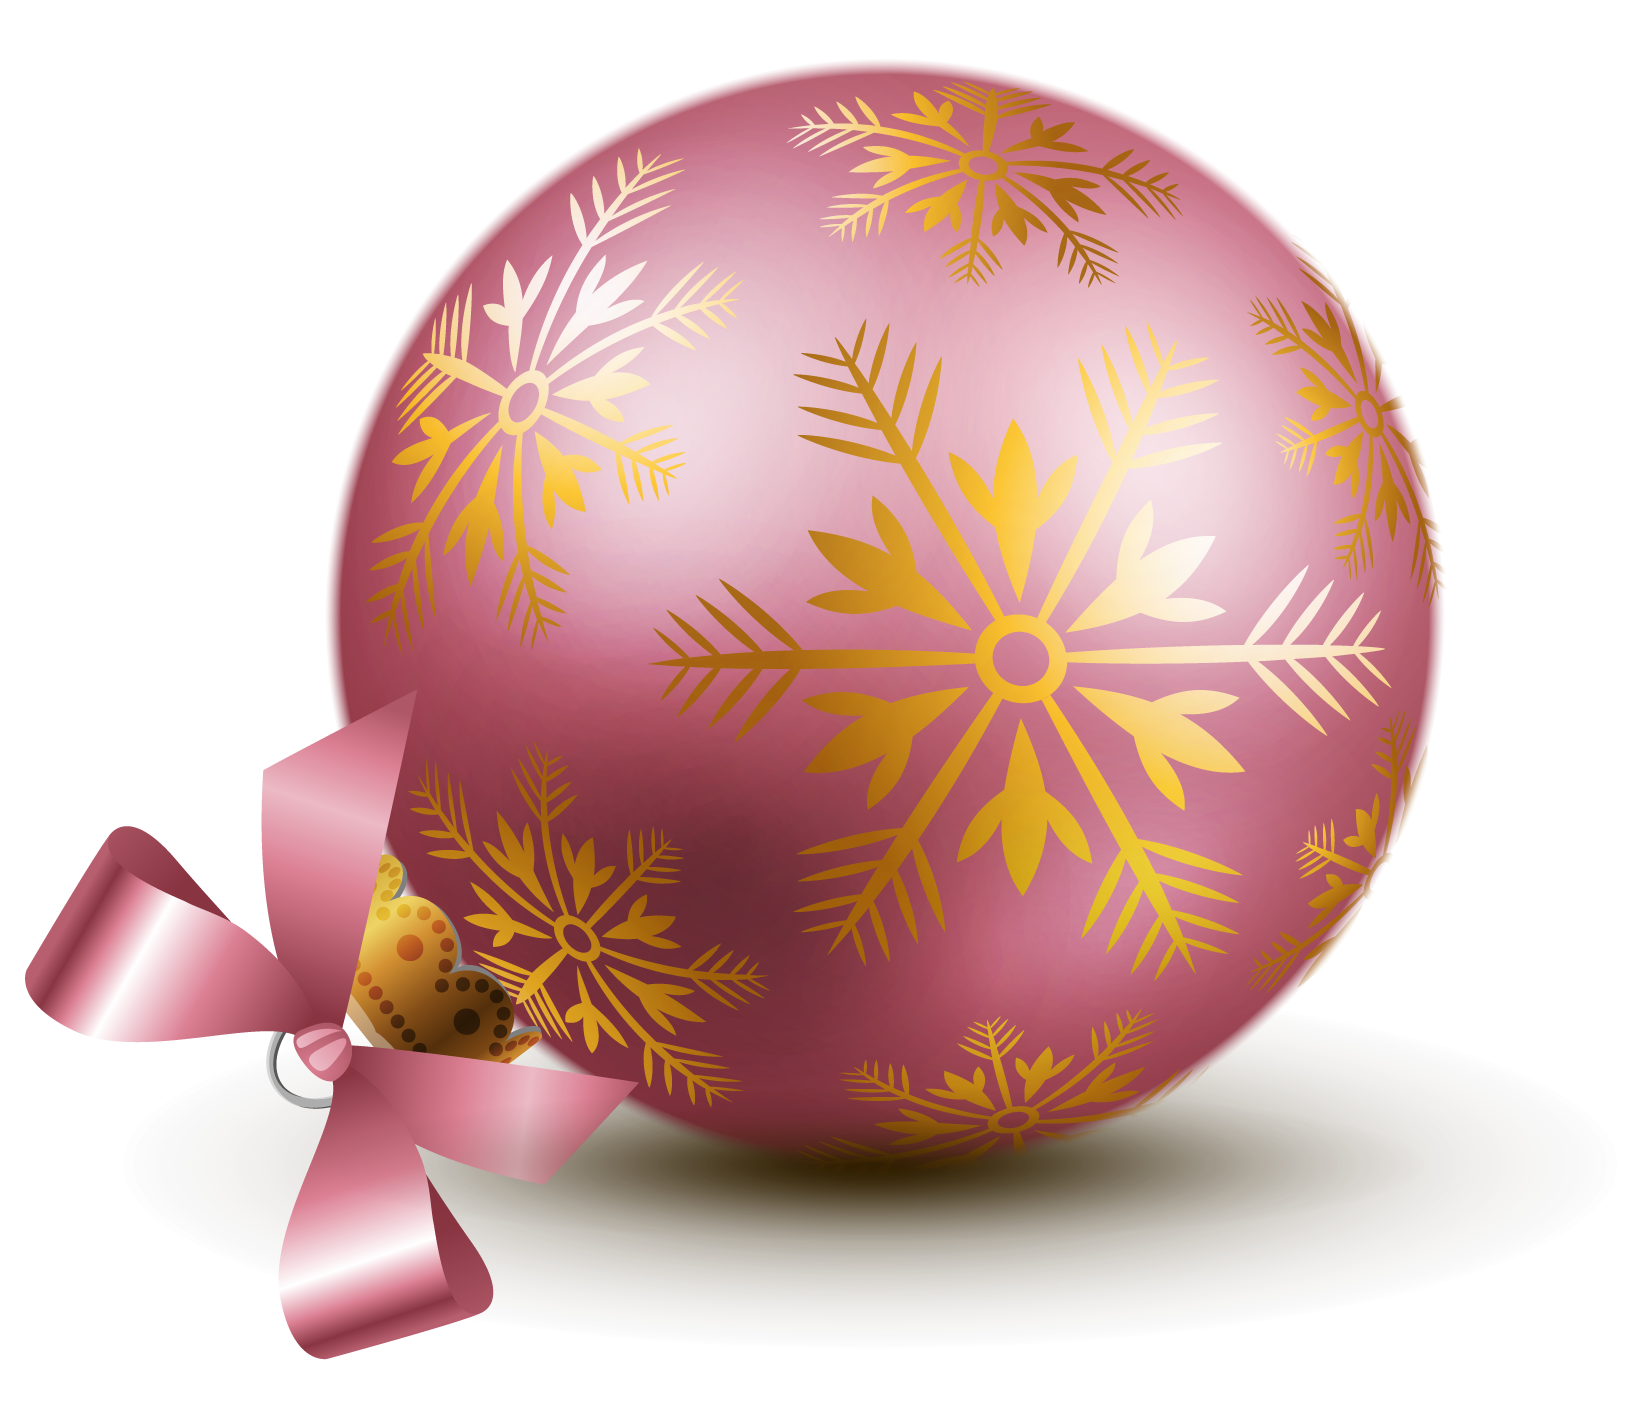 Transparent_Pink_Christmas_Ball_Ornaments_Clipart.png?m=1381356000.